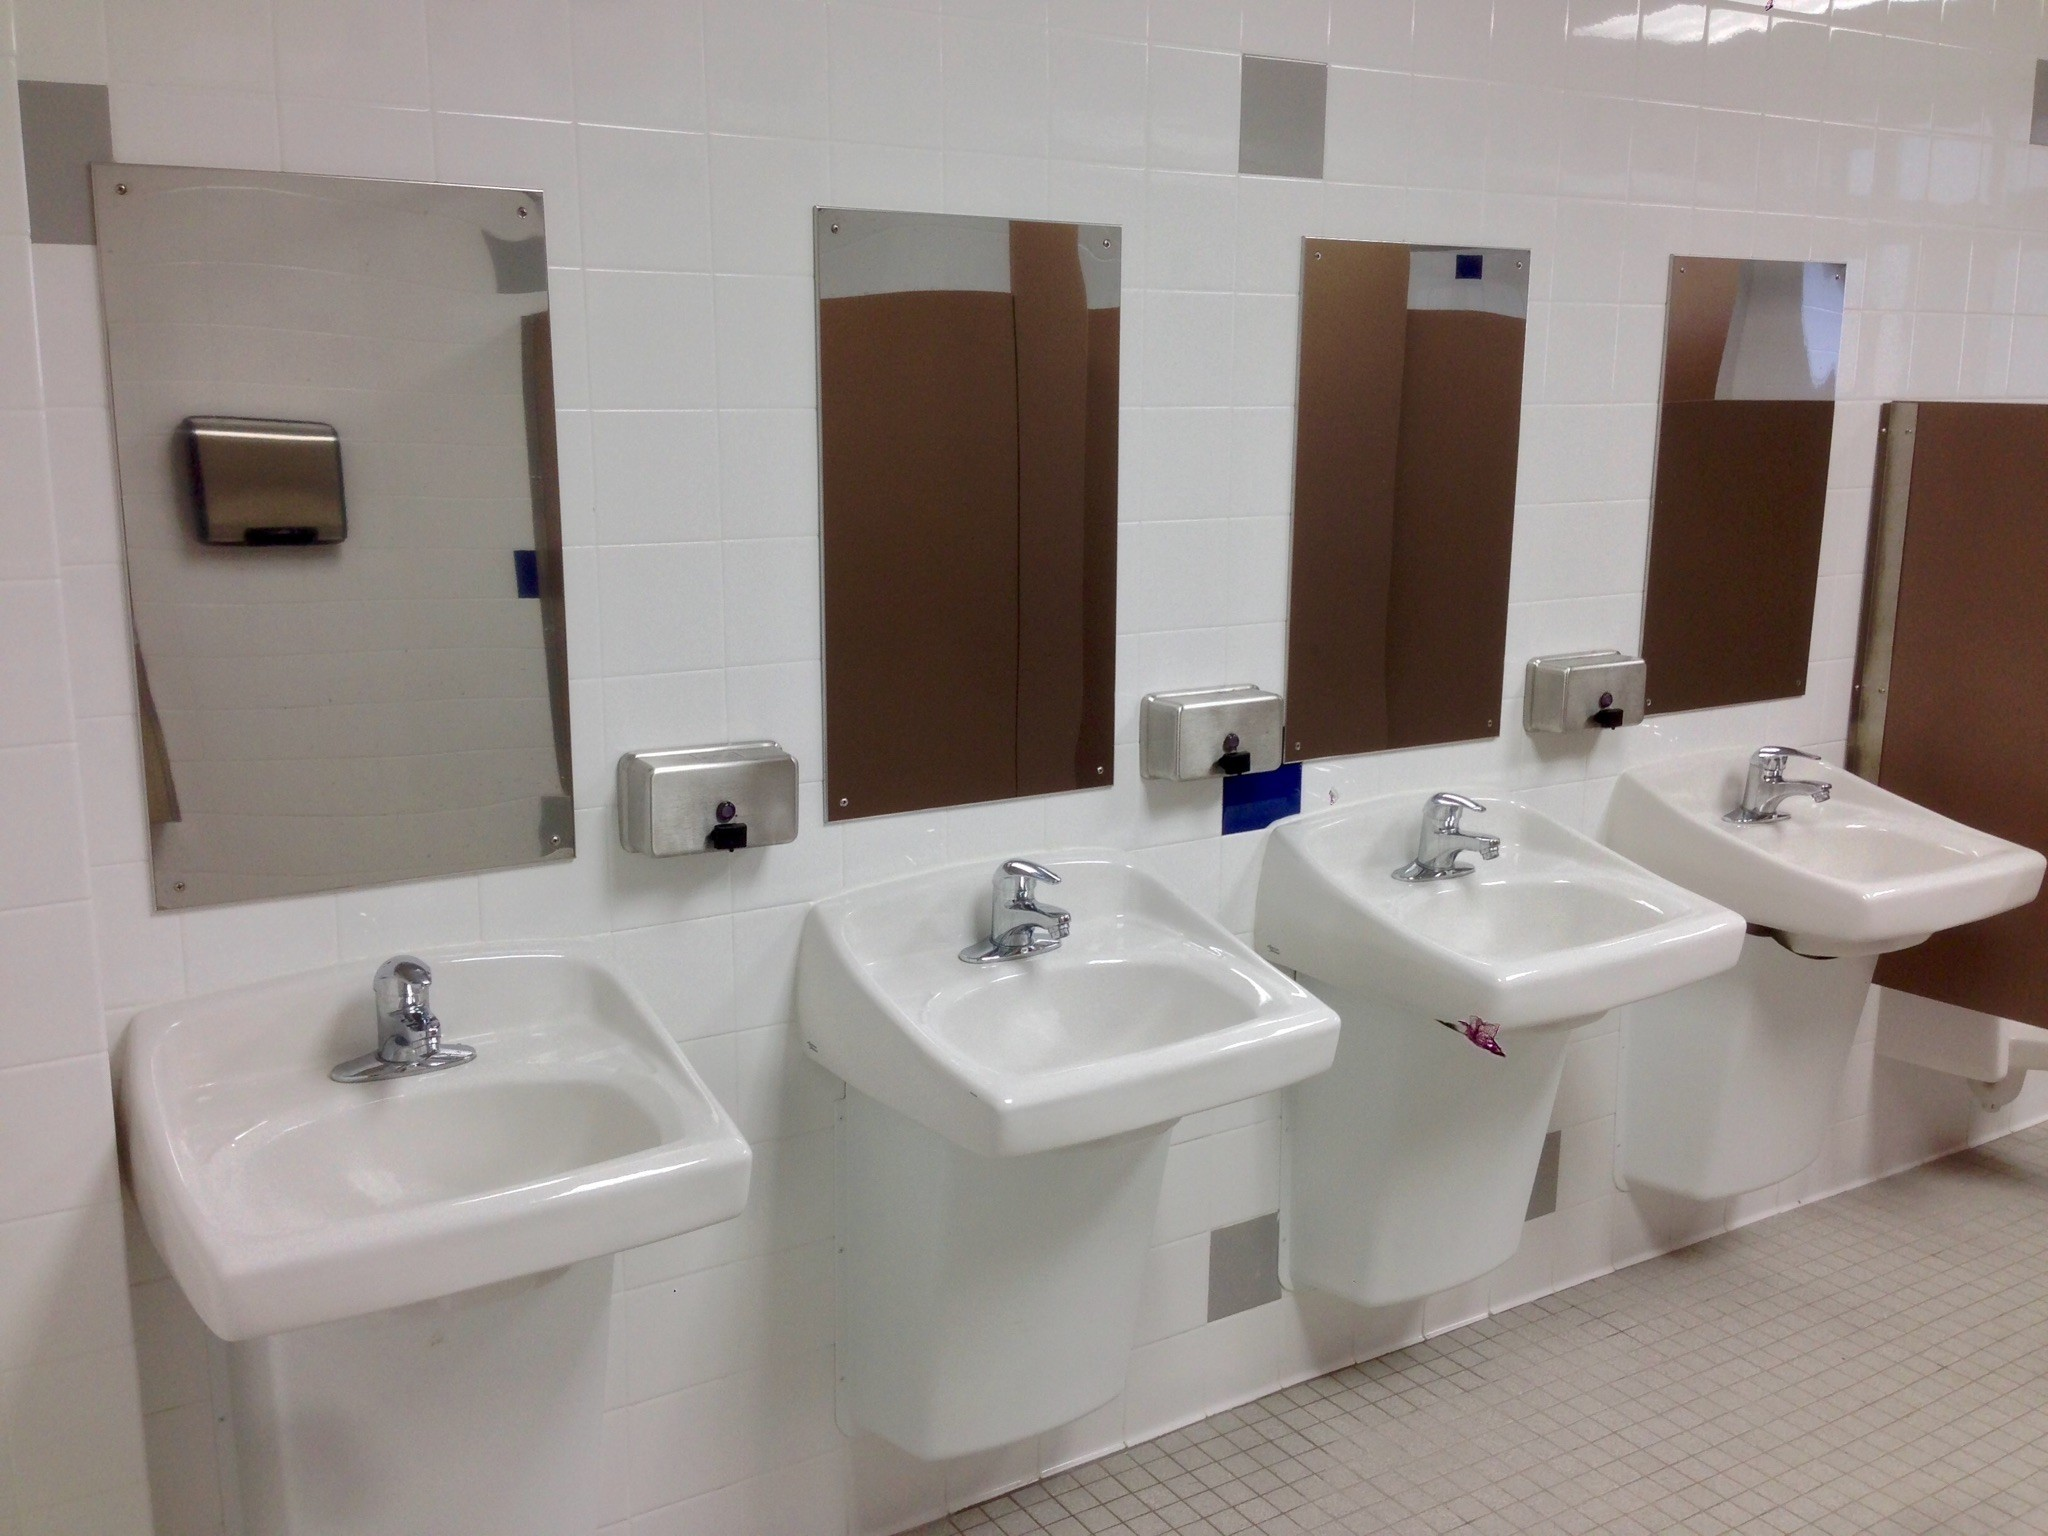 School Bathrooms downstairs bathrooms at alj h.s. get improvements - news - tapinto